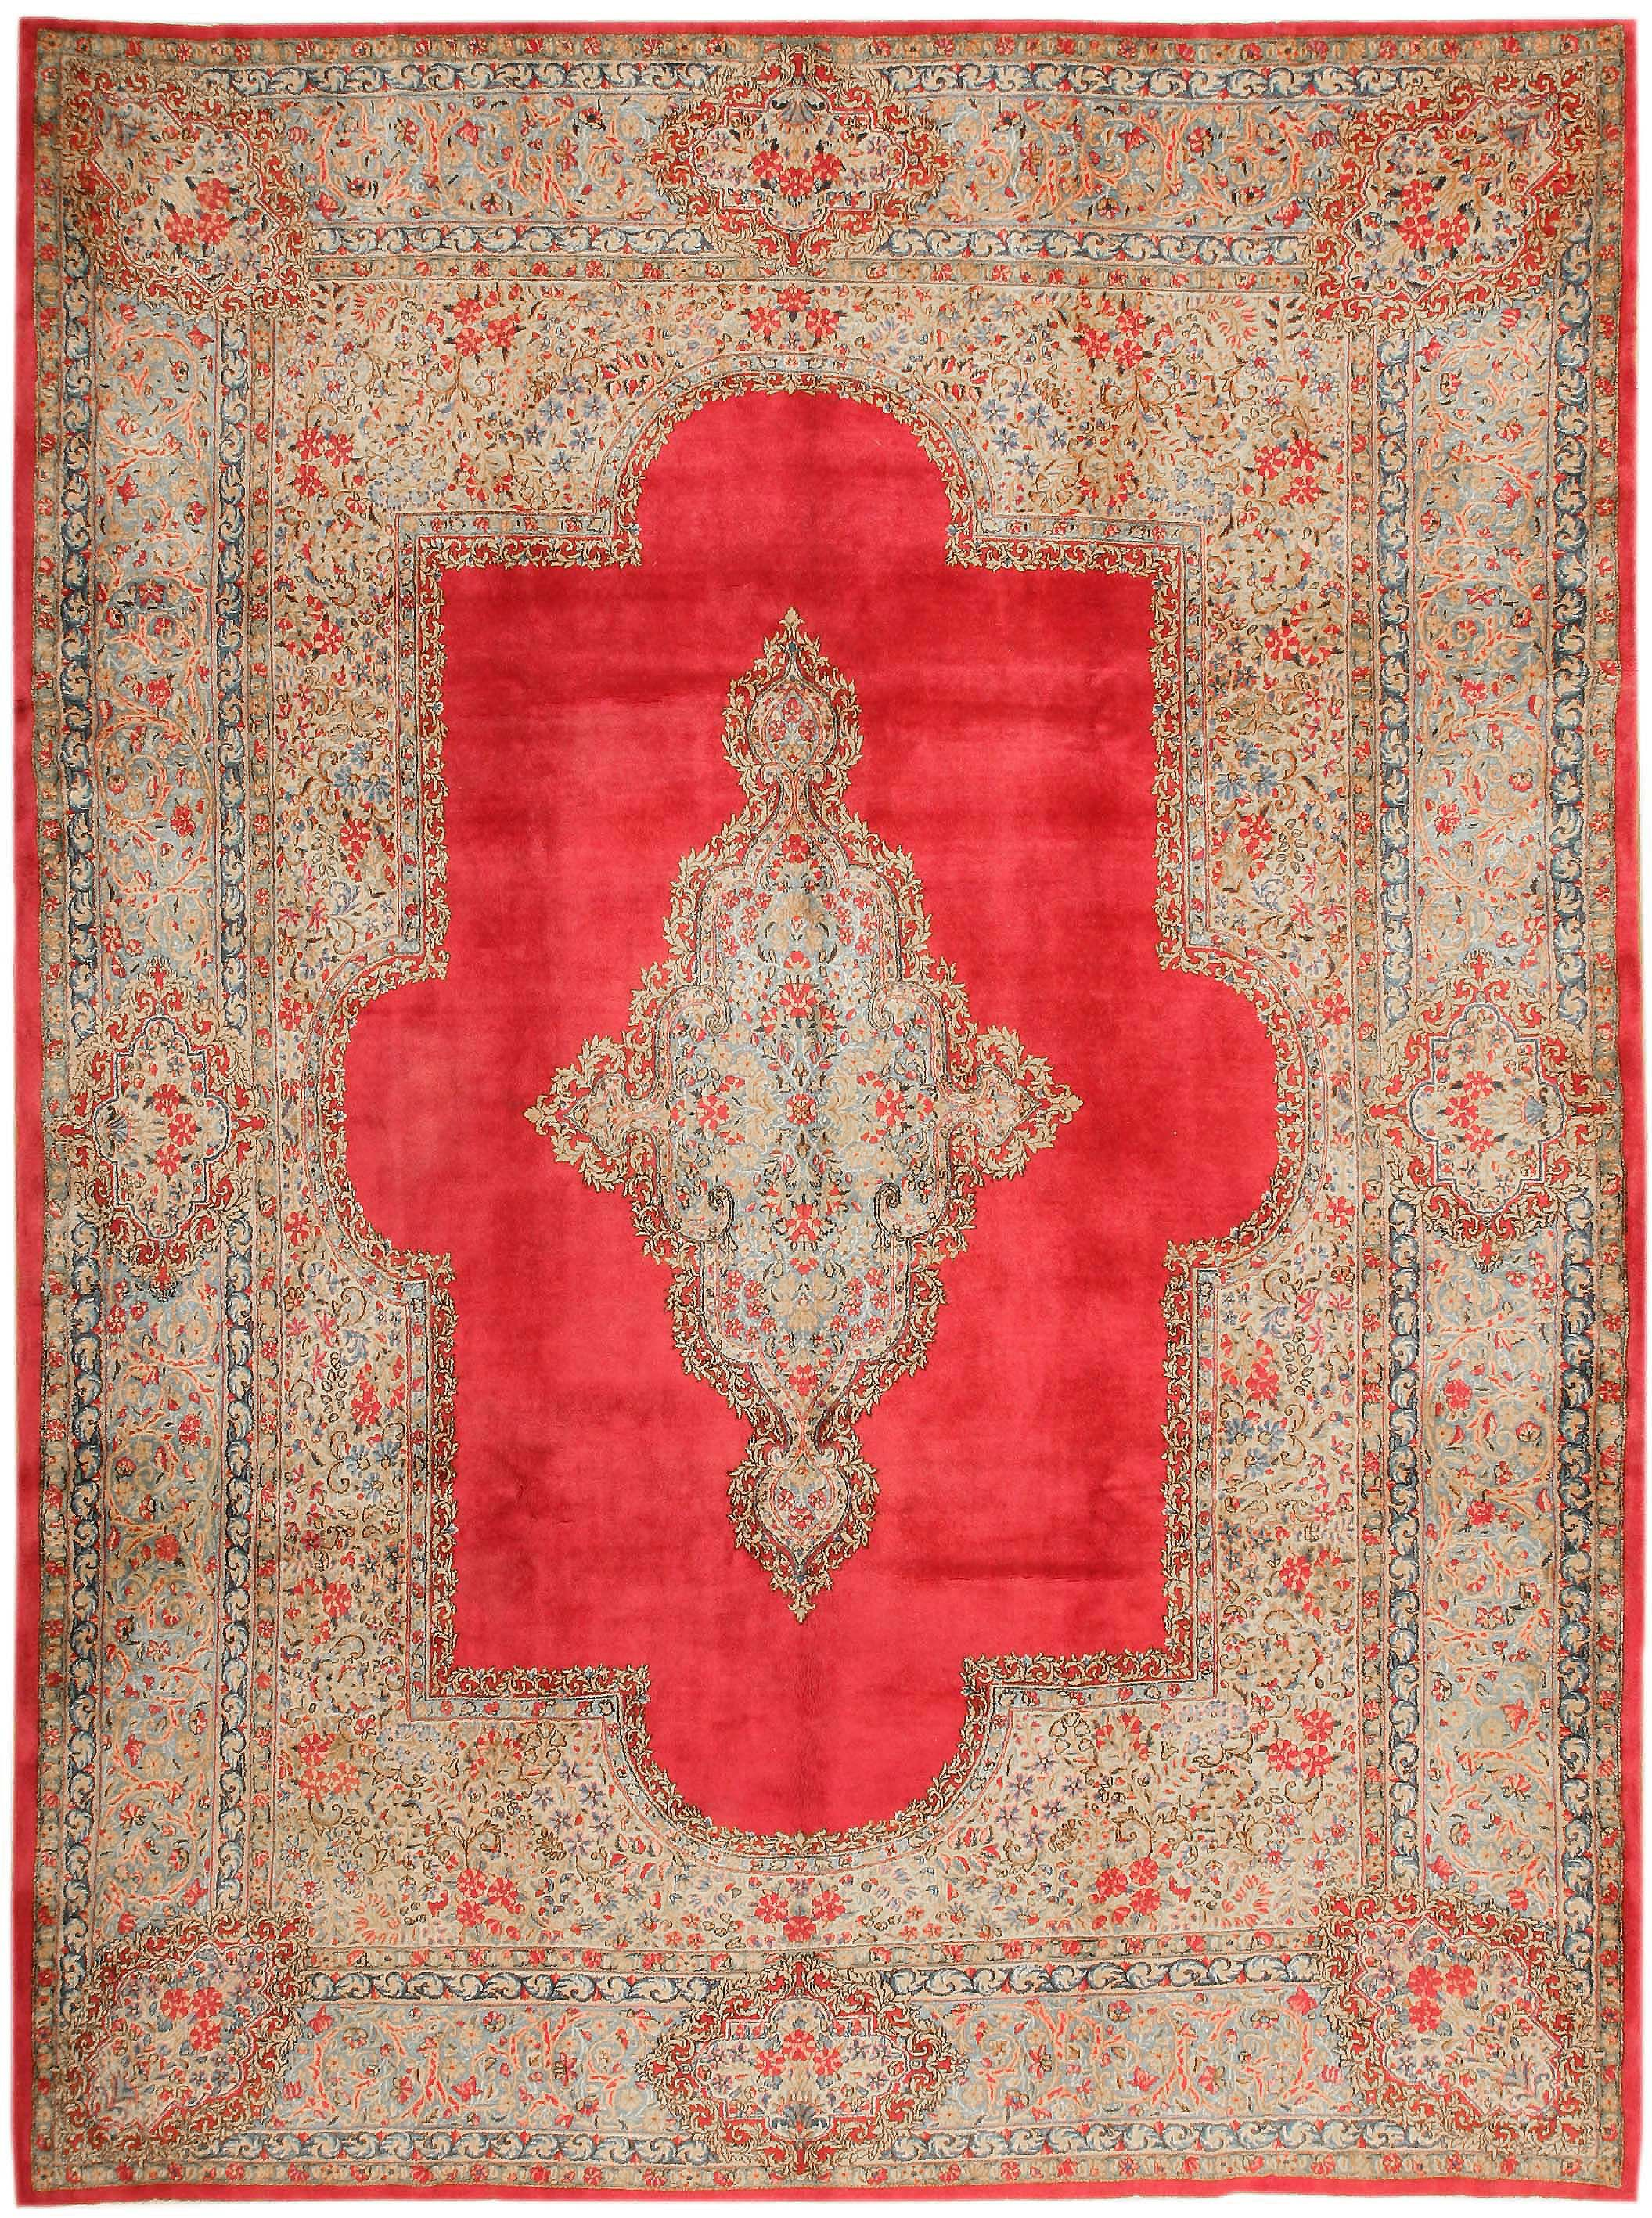 "Antique ""American Kerman"" Rug: Early 20th Century."